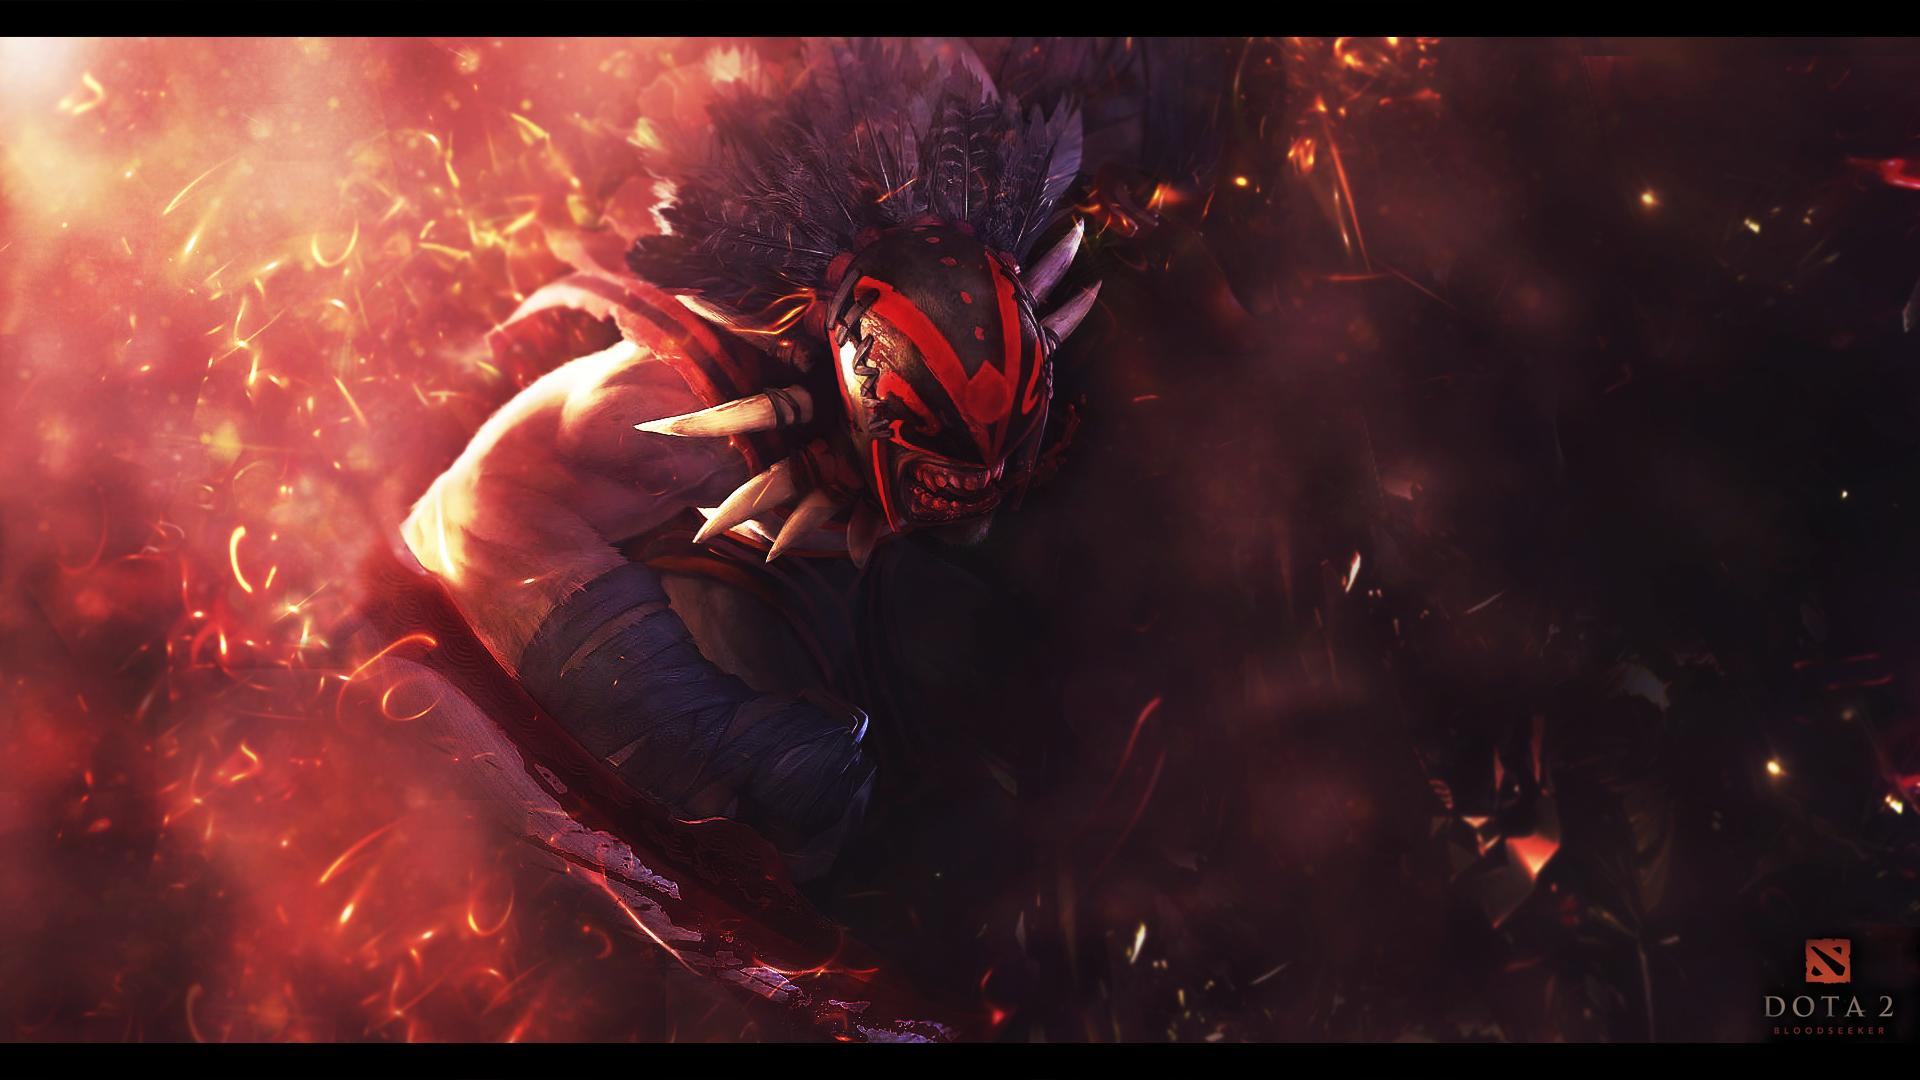 Dota 2 Hd Wallpapers For Pc Download Bbf0